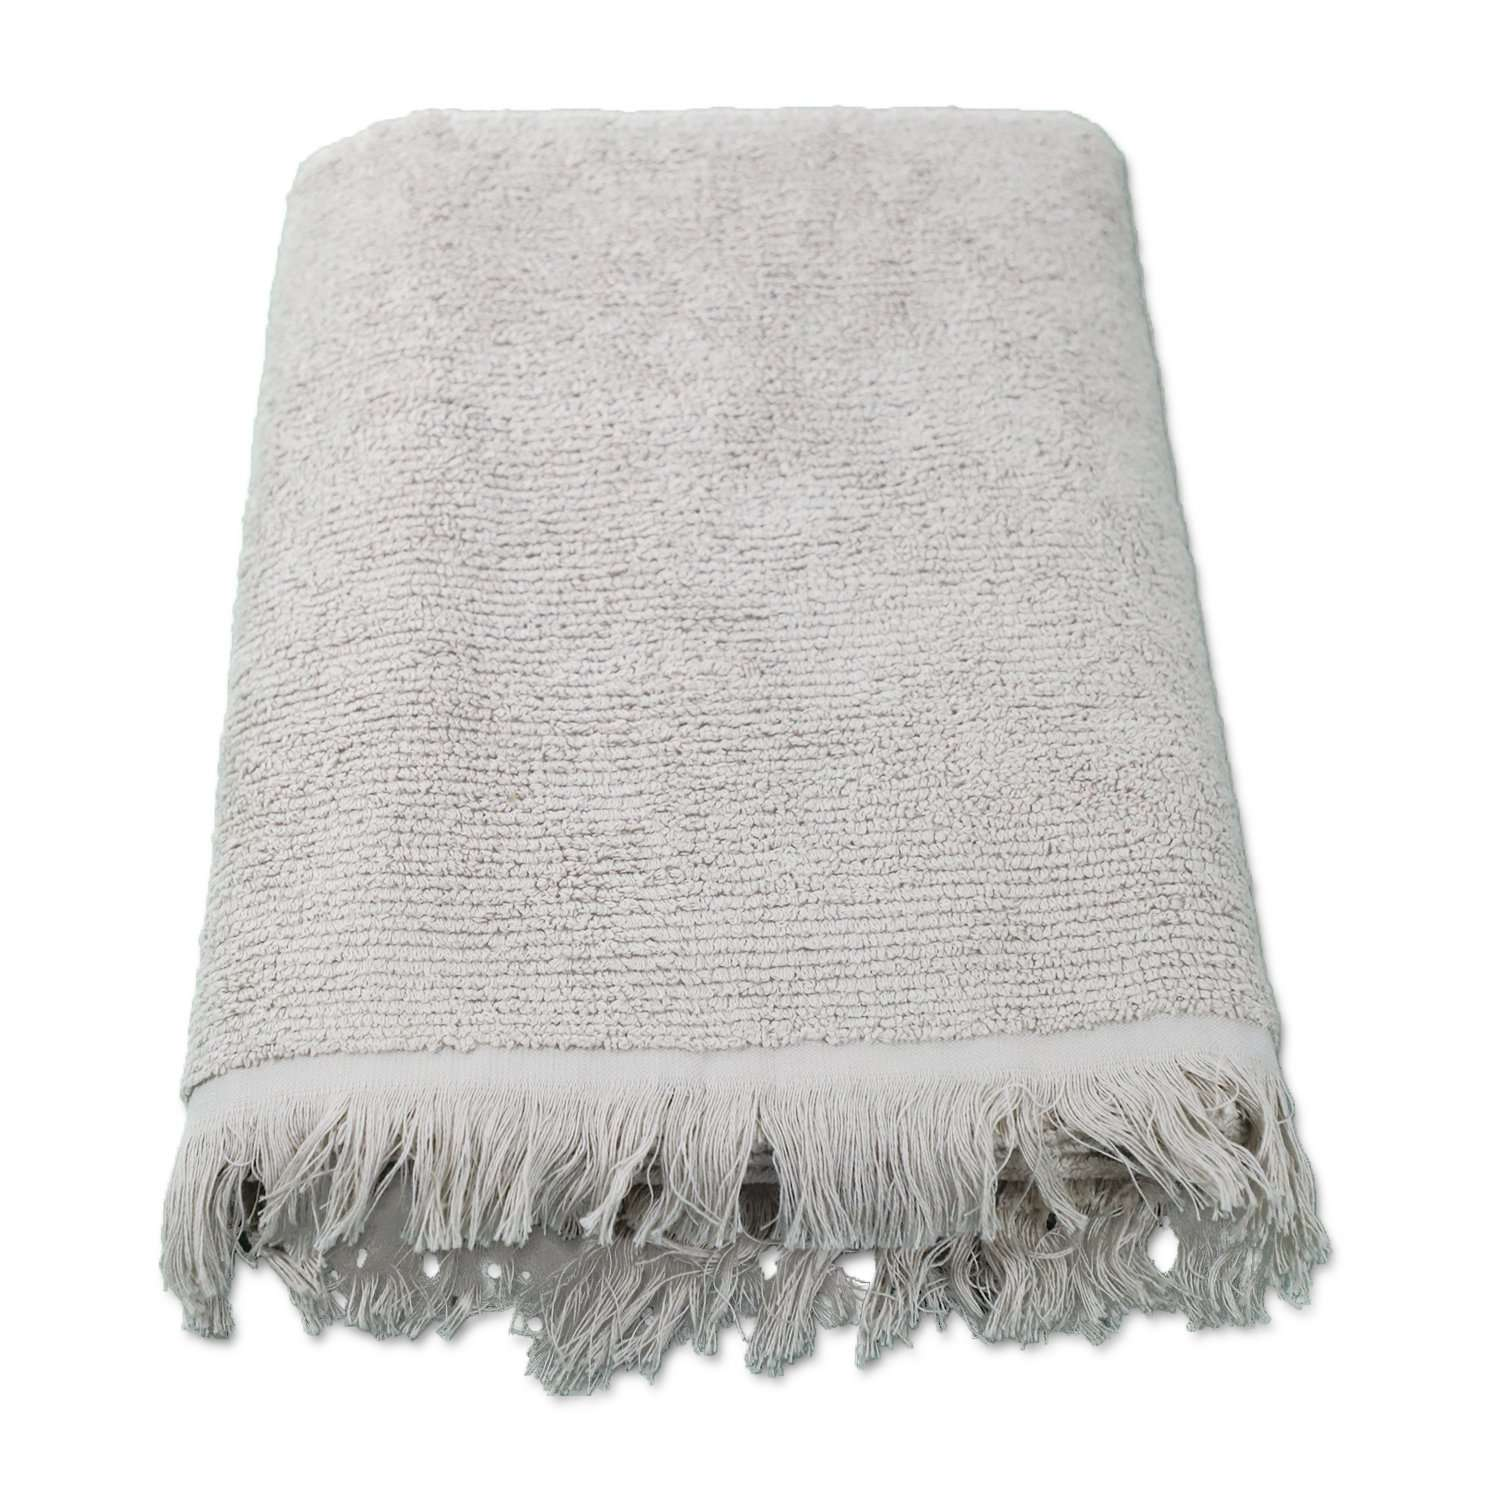 Radford Egyptian Cotton Bath Luxury Towels